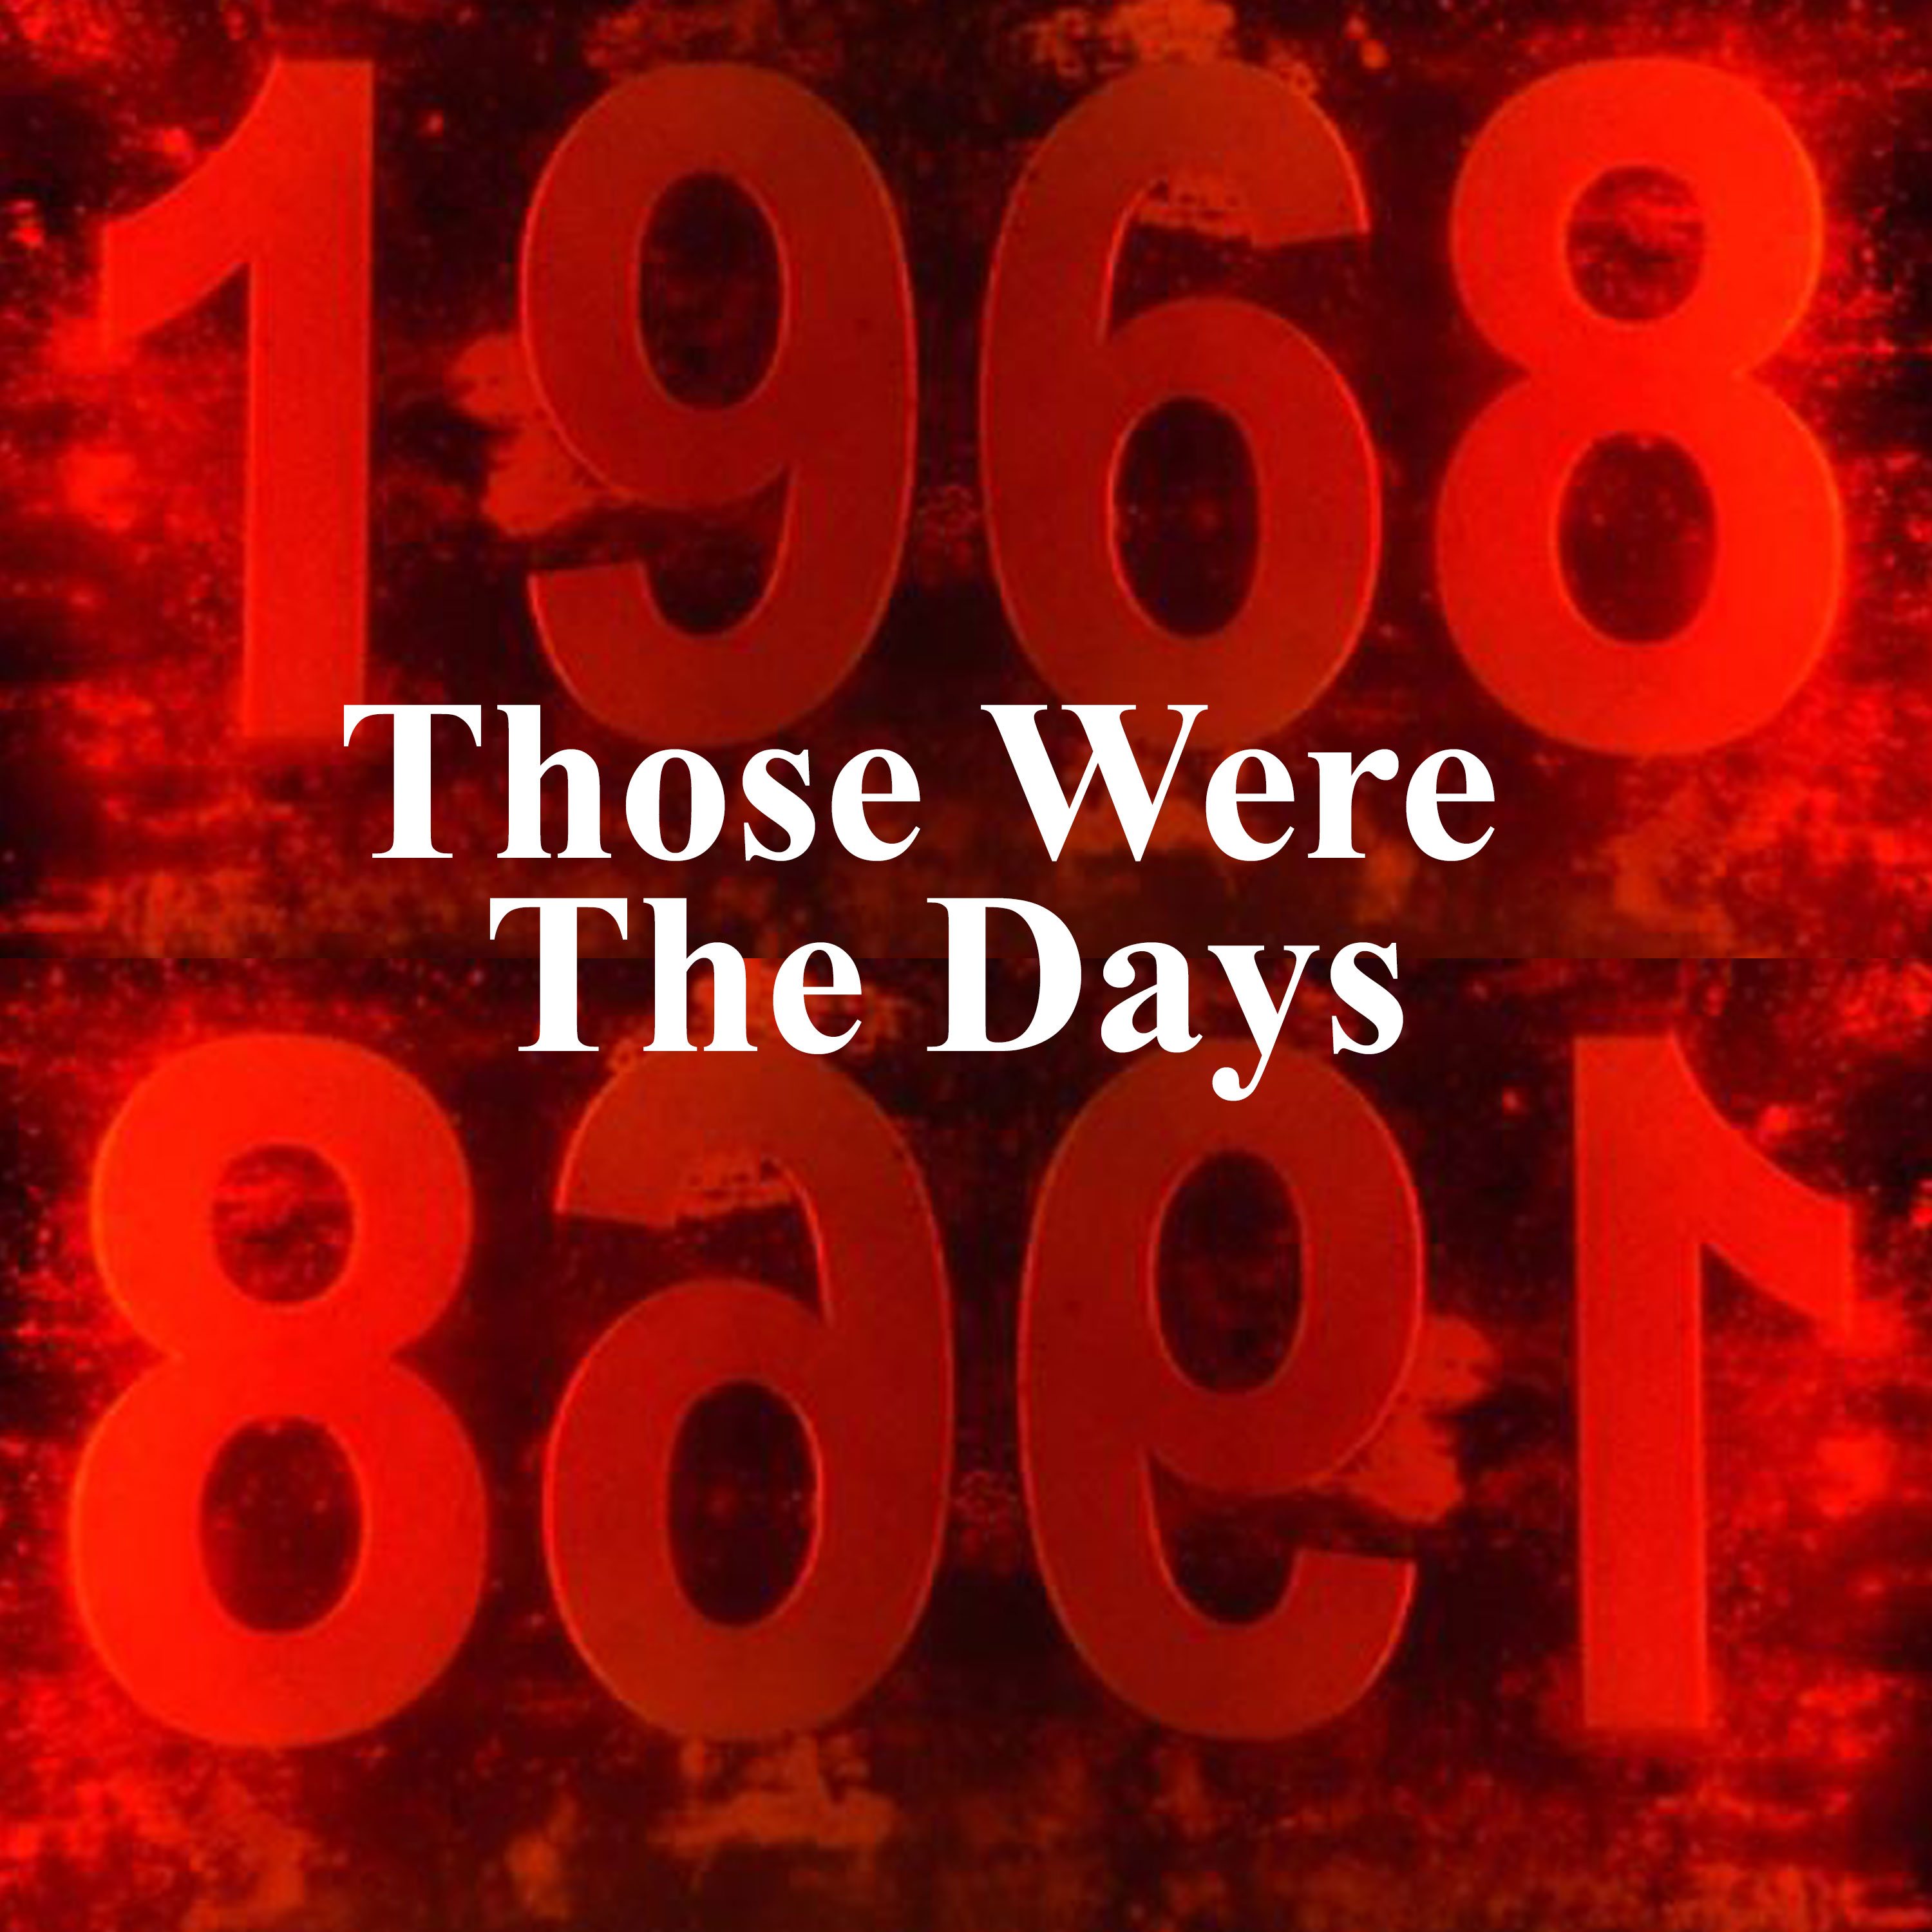 1968 - Those Were The Days